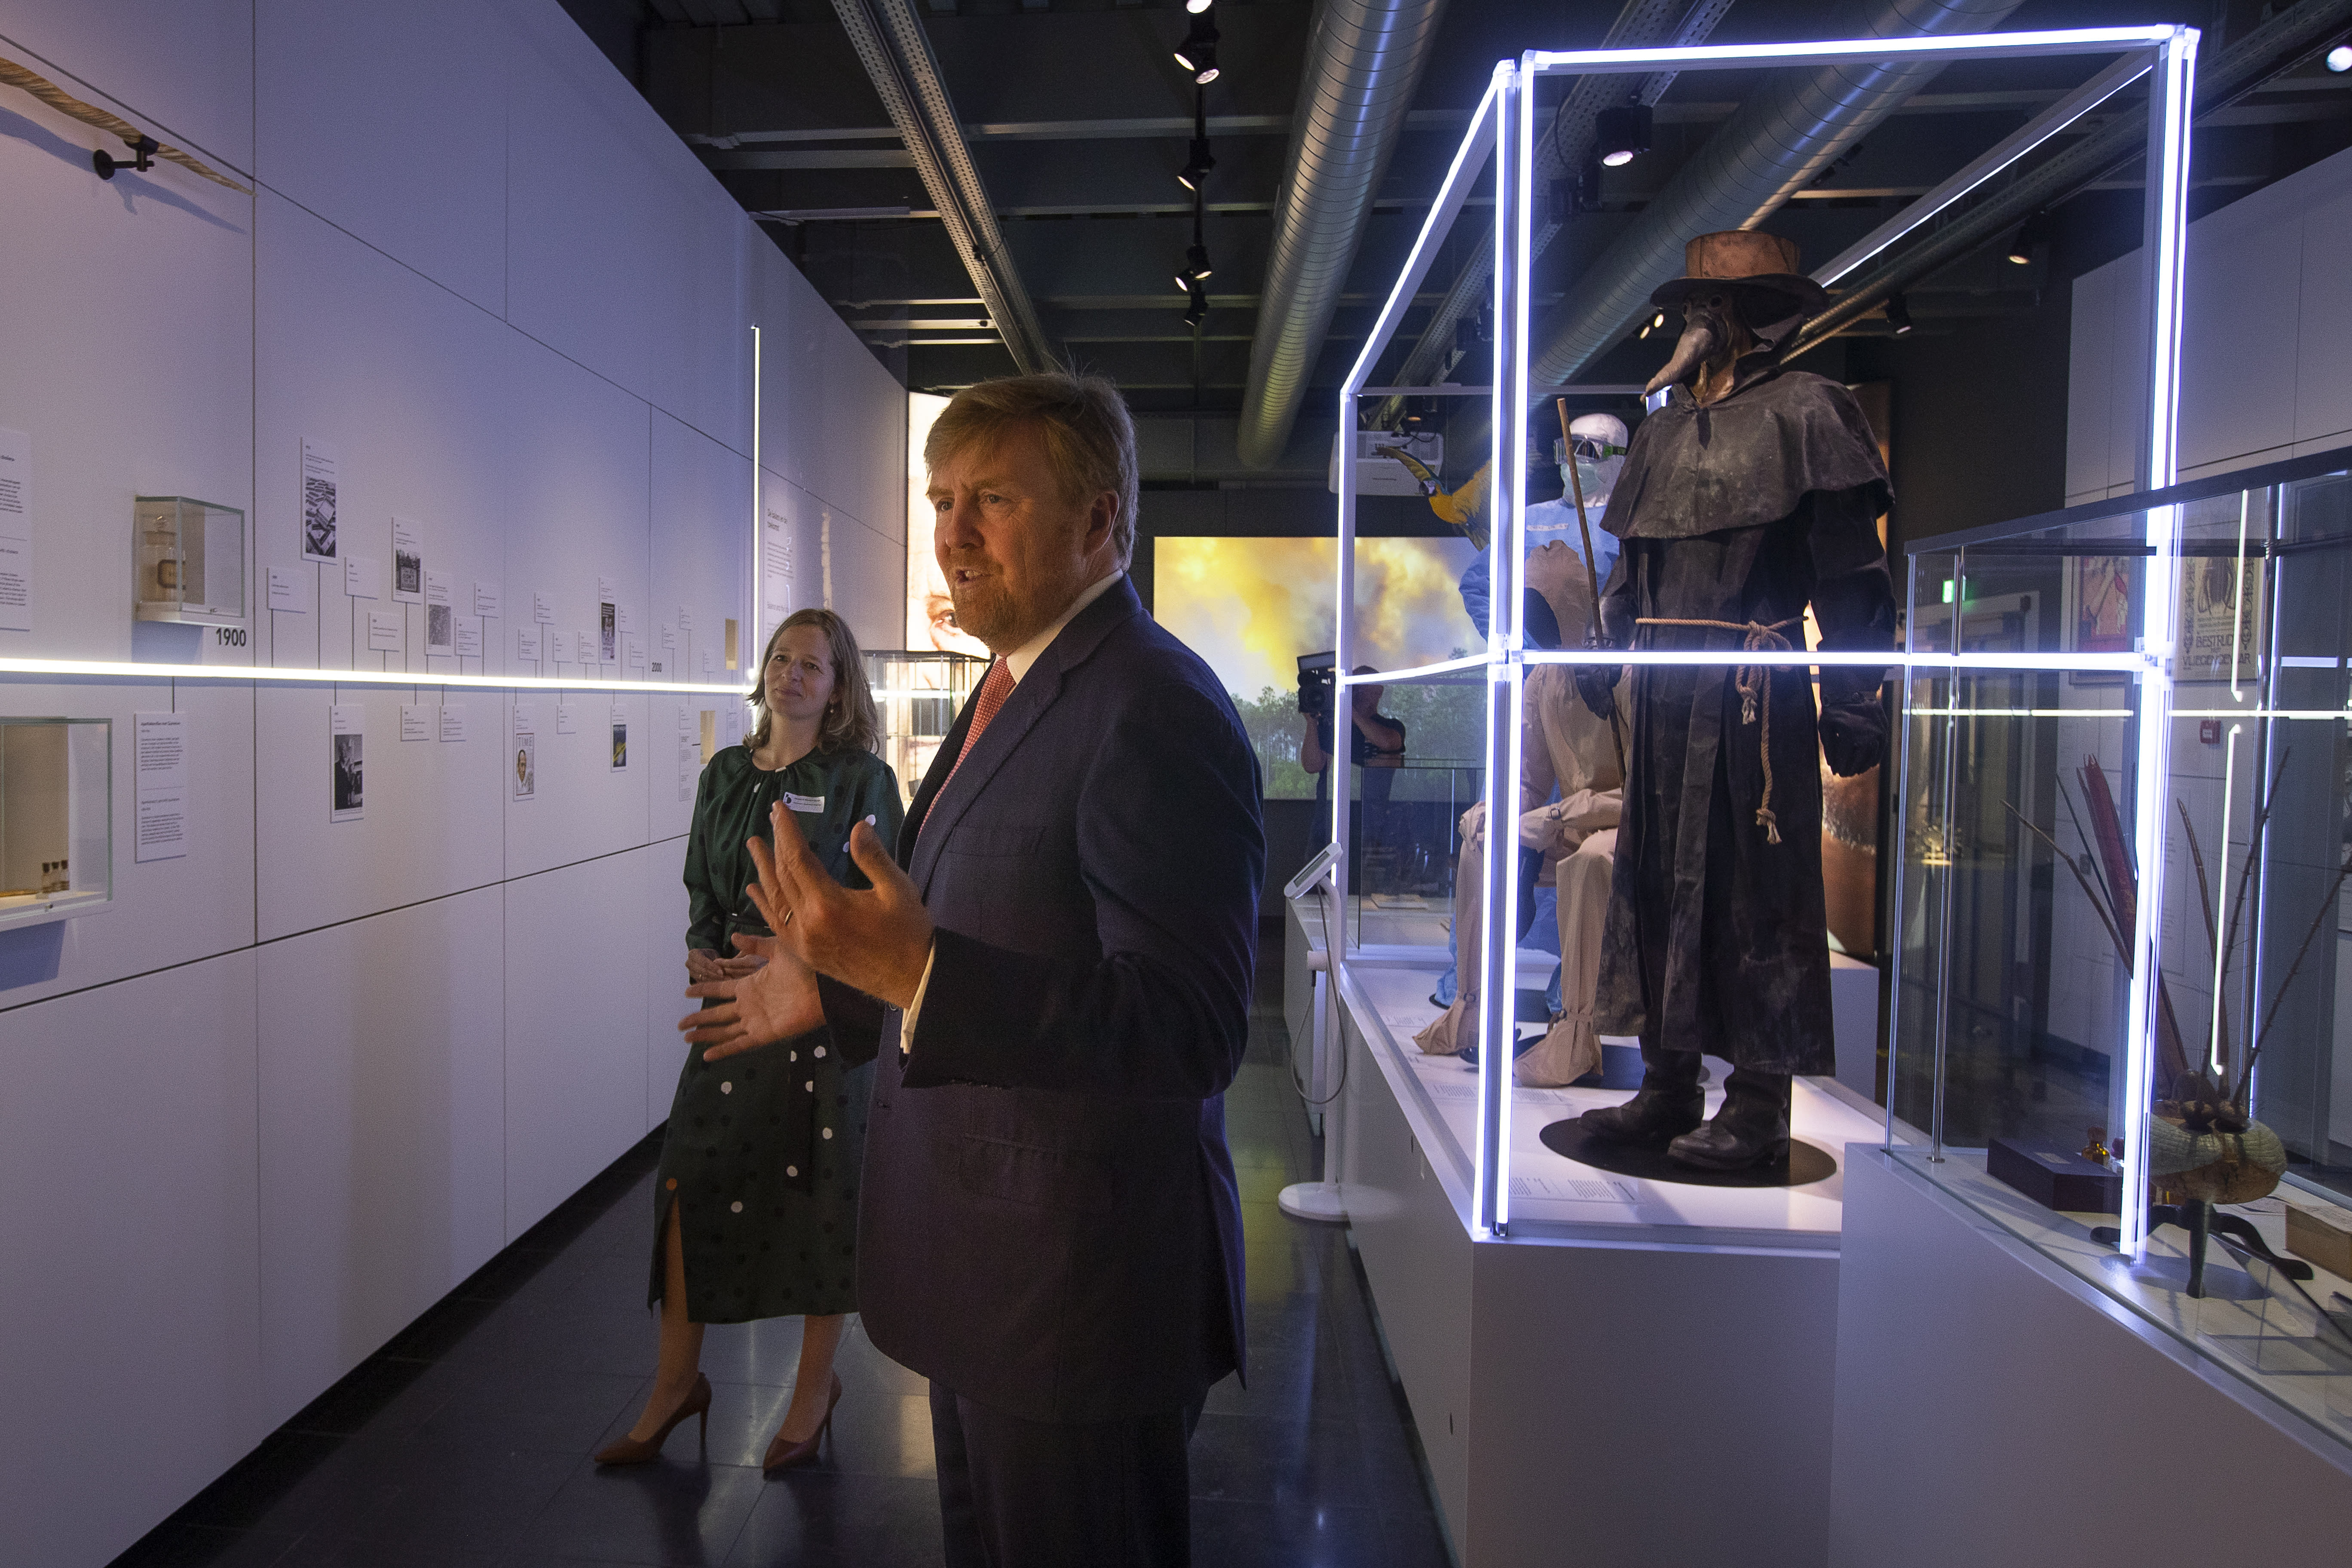 """Dutch King Willem-Alexander and curator Mieneke te Hennepe, left, tour the """"Contagious!"""" exhibit at Rijksmuseum Boerhave in Leiden, Netherlands, Thursday, July 16, 2020. The museum finally opened an exhibition Thursday on contagious diseases through the ages after a long delay caused by the disease currently sweeping the world, COVID-19. (AP Photo/Peter Dejong, Pool)"""